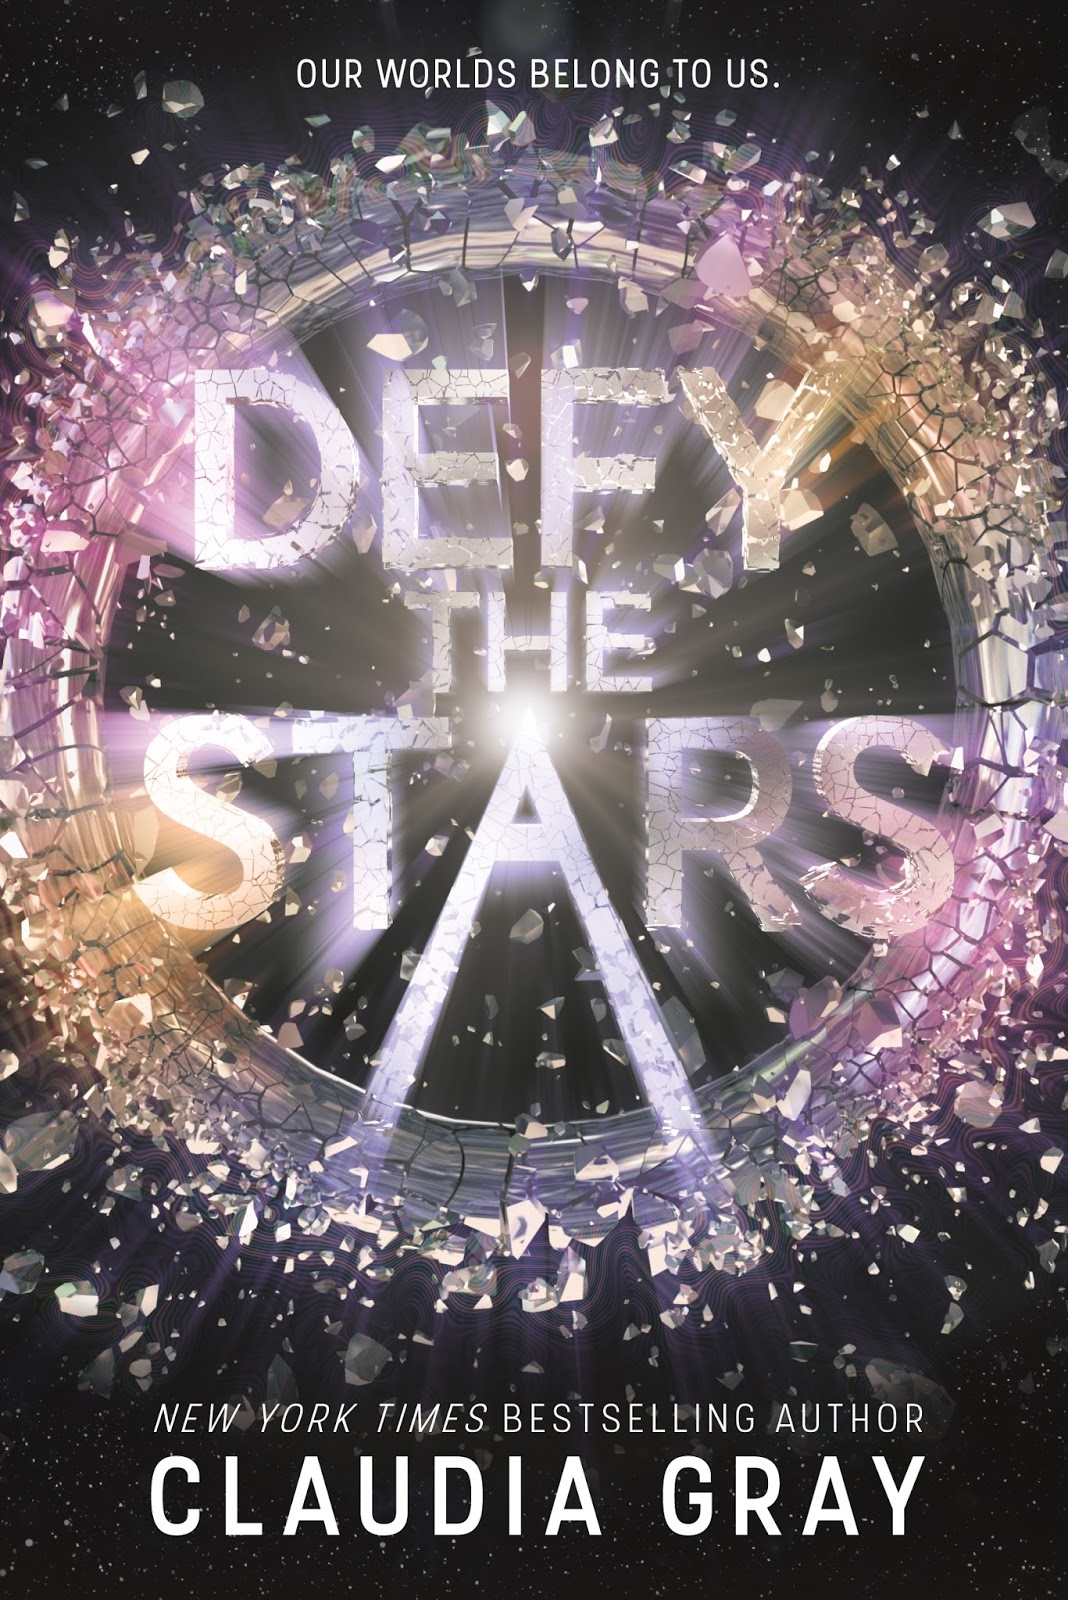 Defy the Stars (Defy the Stars #1) by Claudia Gray